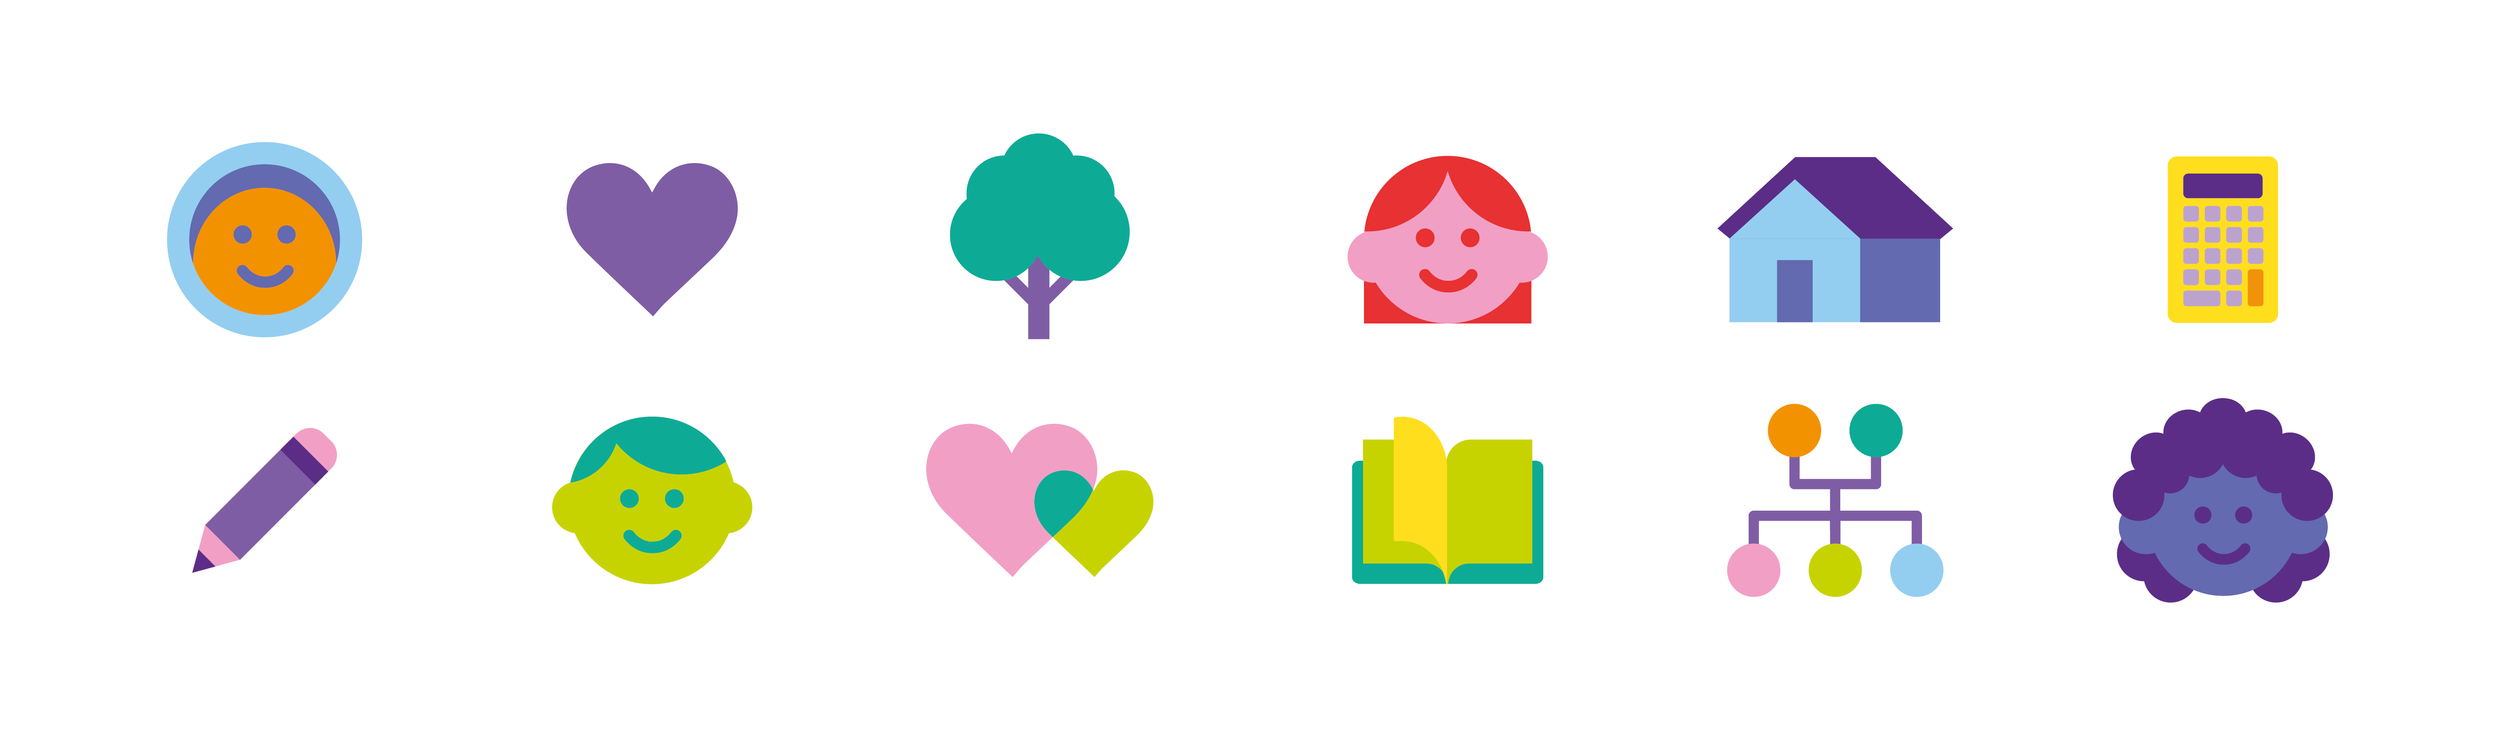 Little Human_Icons_IG-03.png